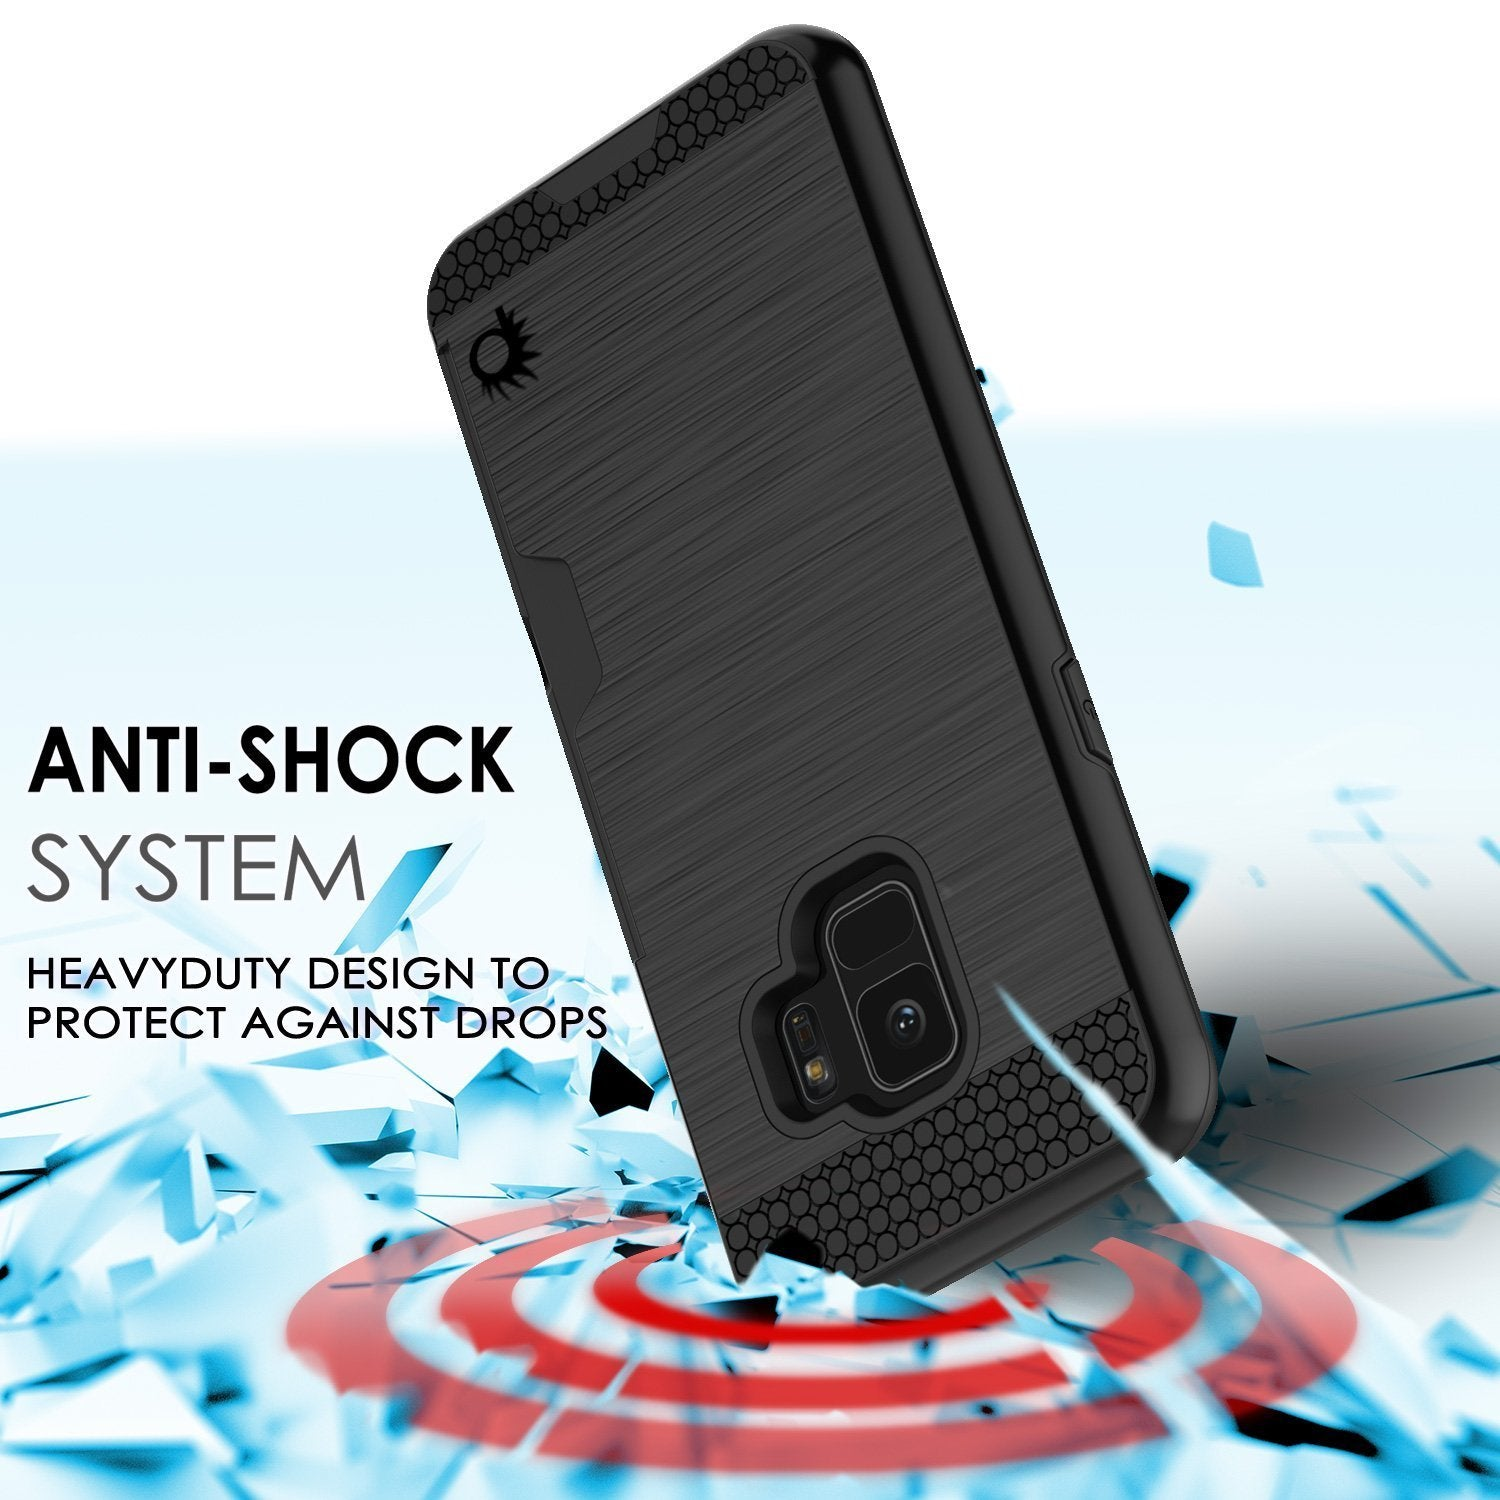 Galaxy S9 Case, PUNKcase [SLOT Series] [Slim Fit] Dual-Layer Armor Cover w/Integrated Anti-Shock System, Credit Card Slot [Black]